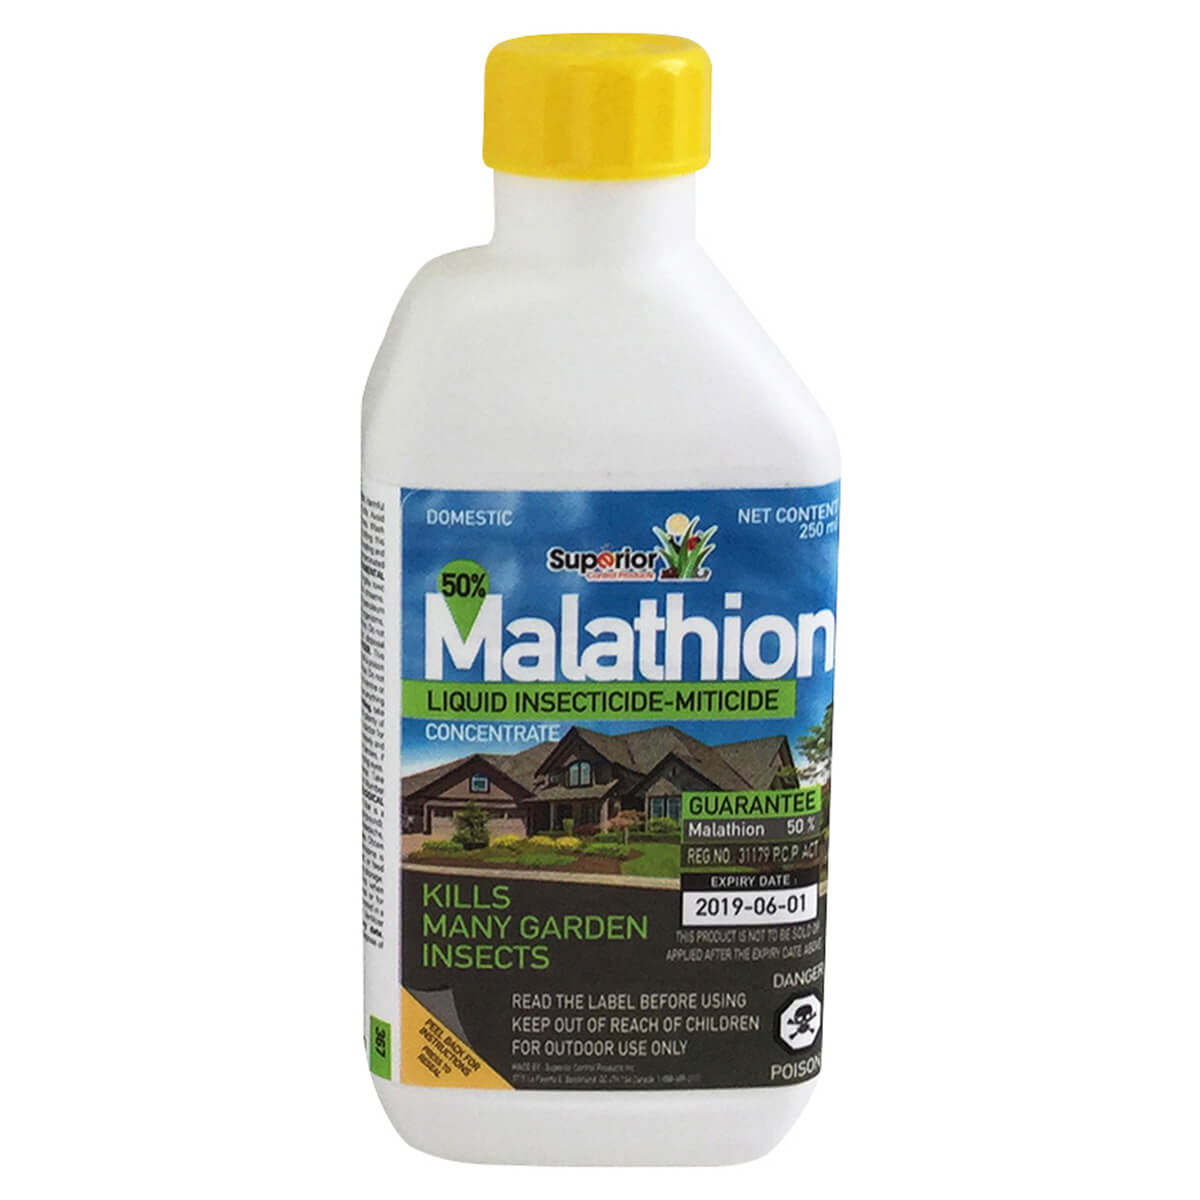 50% Malathion Liquid Insecticide/Miticide 500 mL